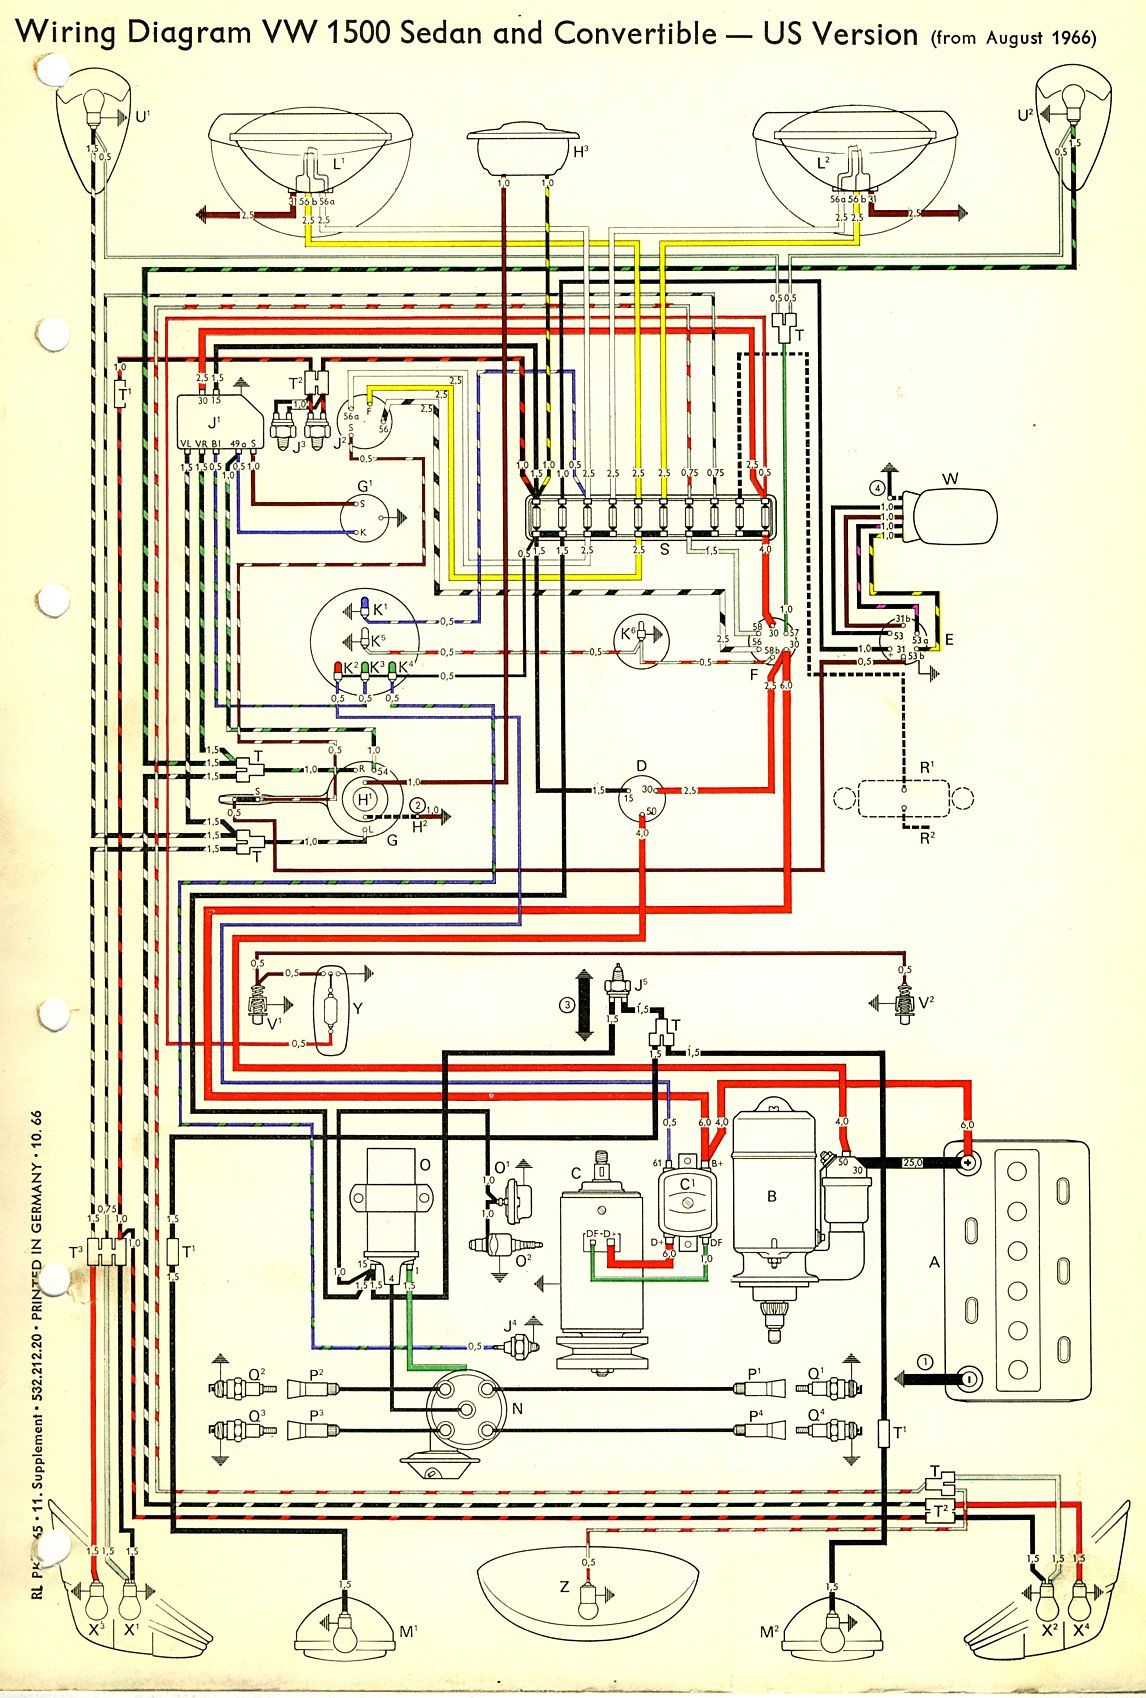 66 Vw Wiring Diagram Radio Schematics Diagrams Garmin Gps 2006c 1967 Beetle Usa Thegoldenbug Com Best Rh Pinterest 1500